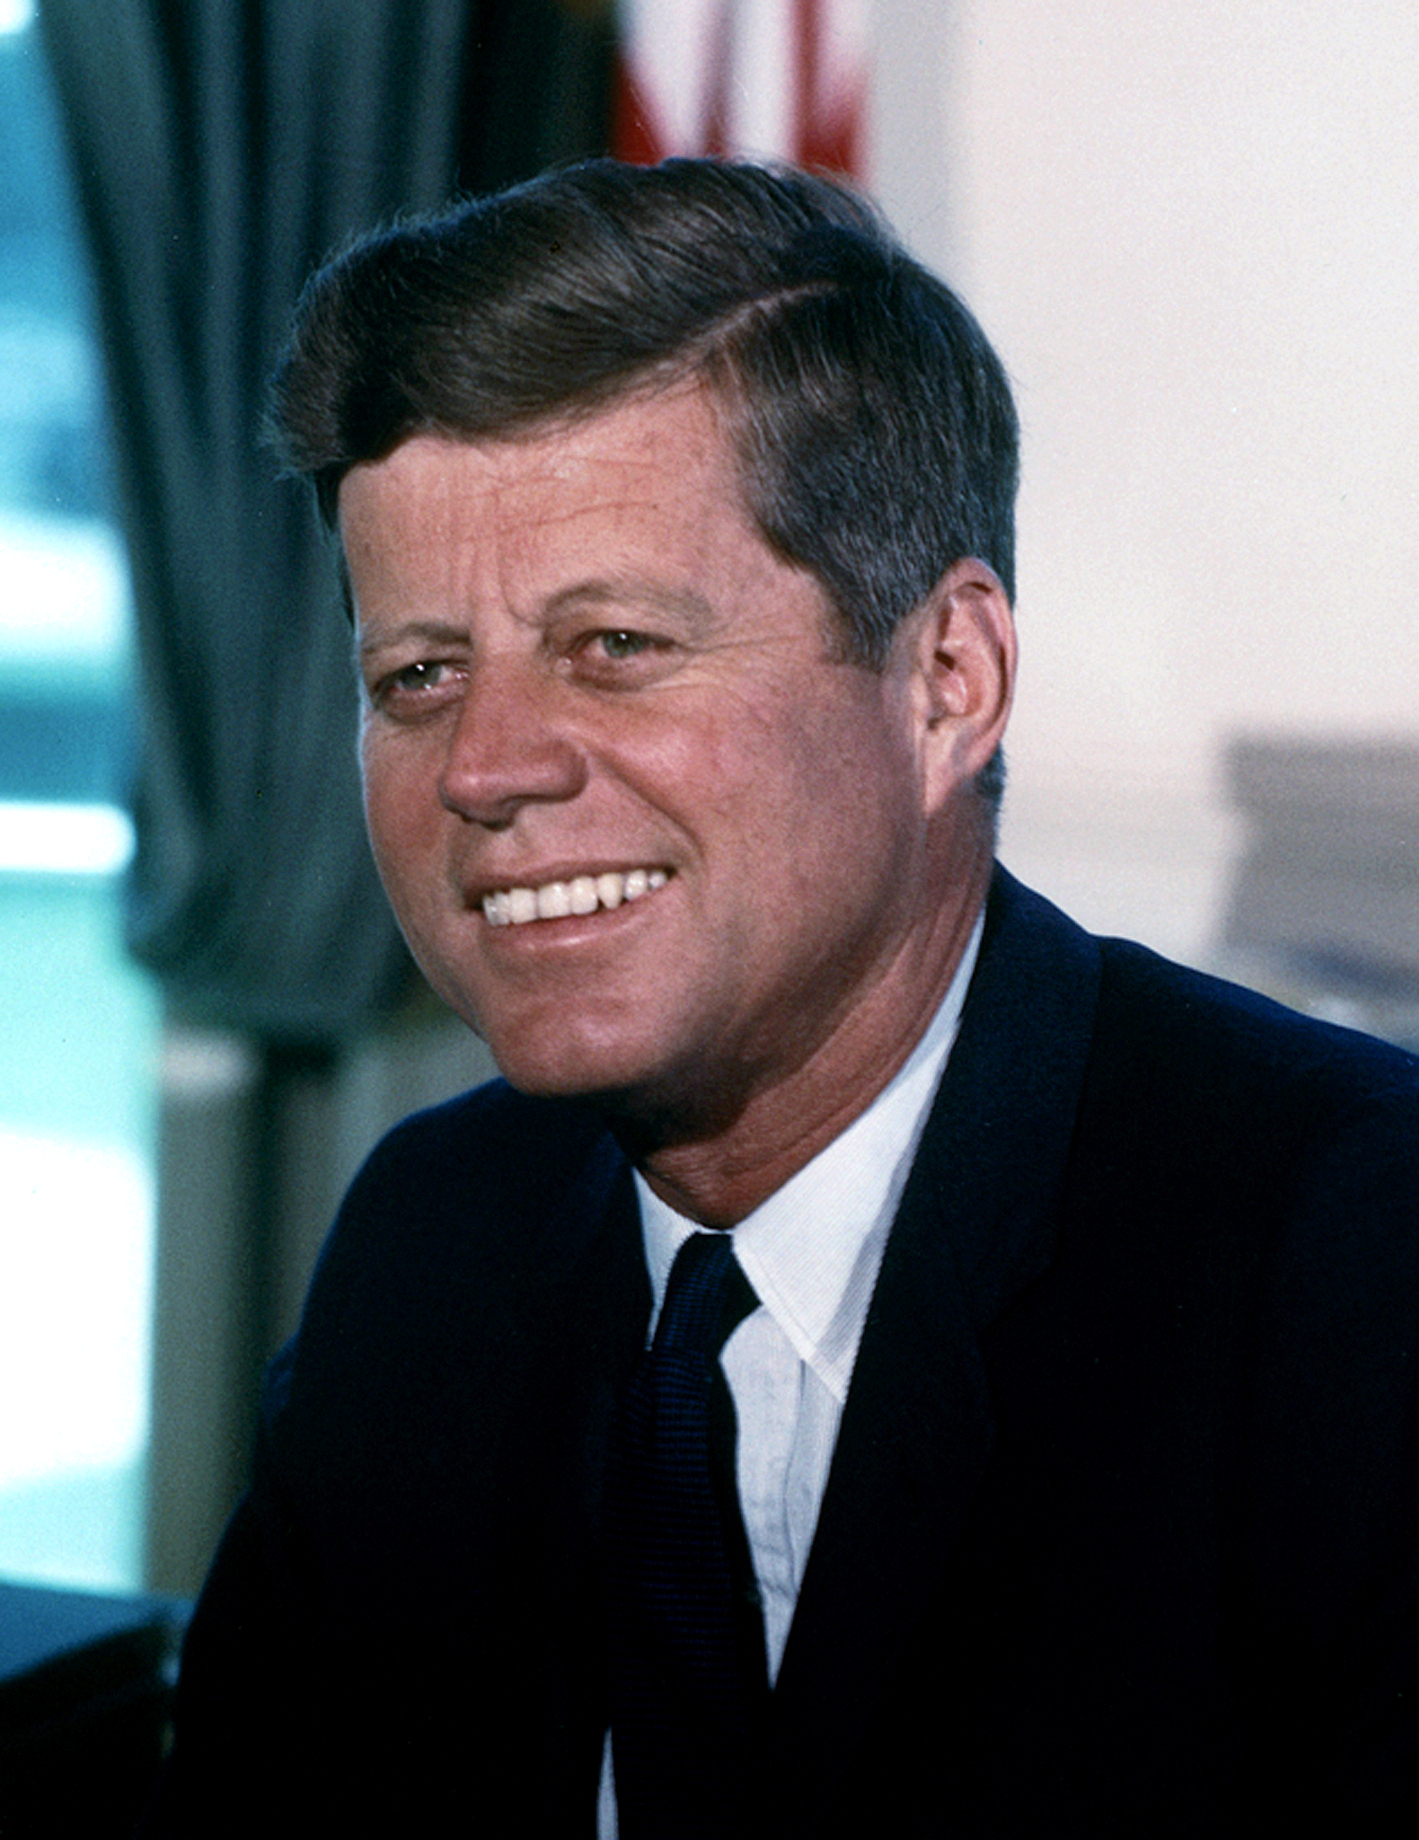 https://upload.wikimedia.org/wikipedia/commons/c/c3/John_F._Kennedy%2C_White_House_color_photo_portrait.jpg